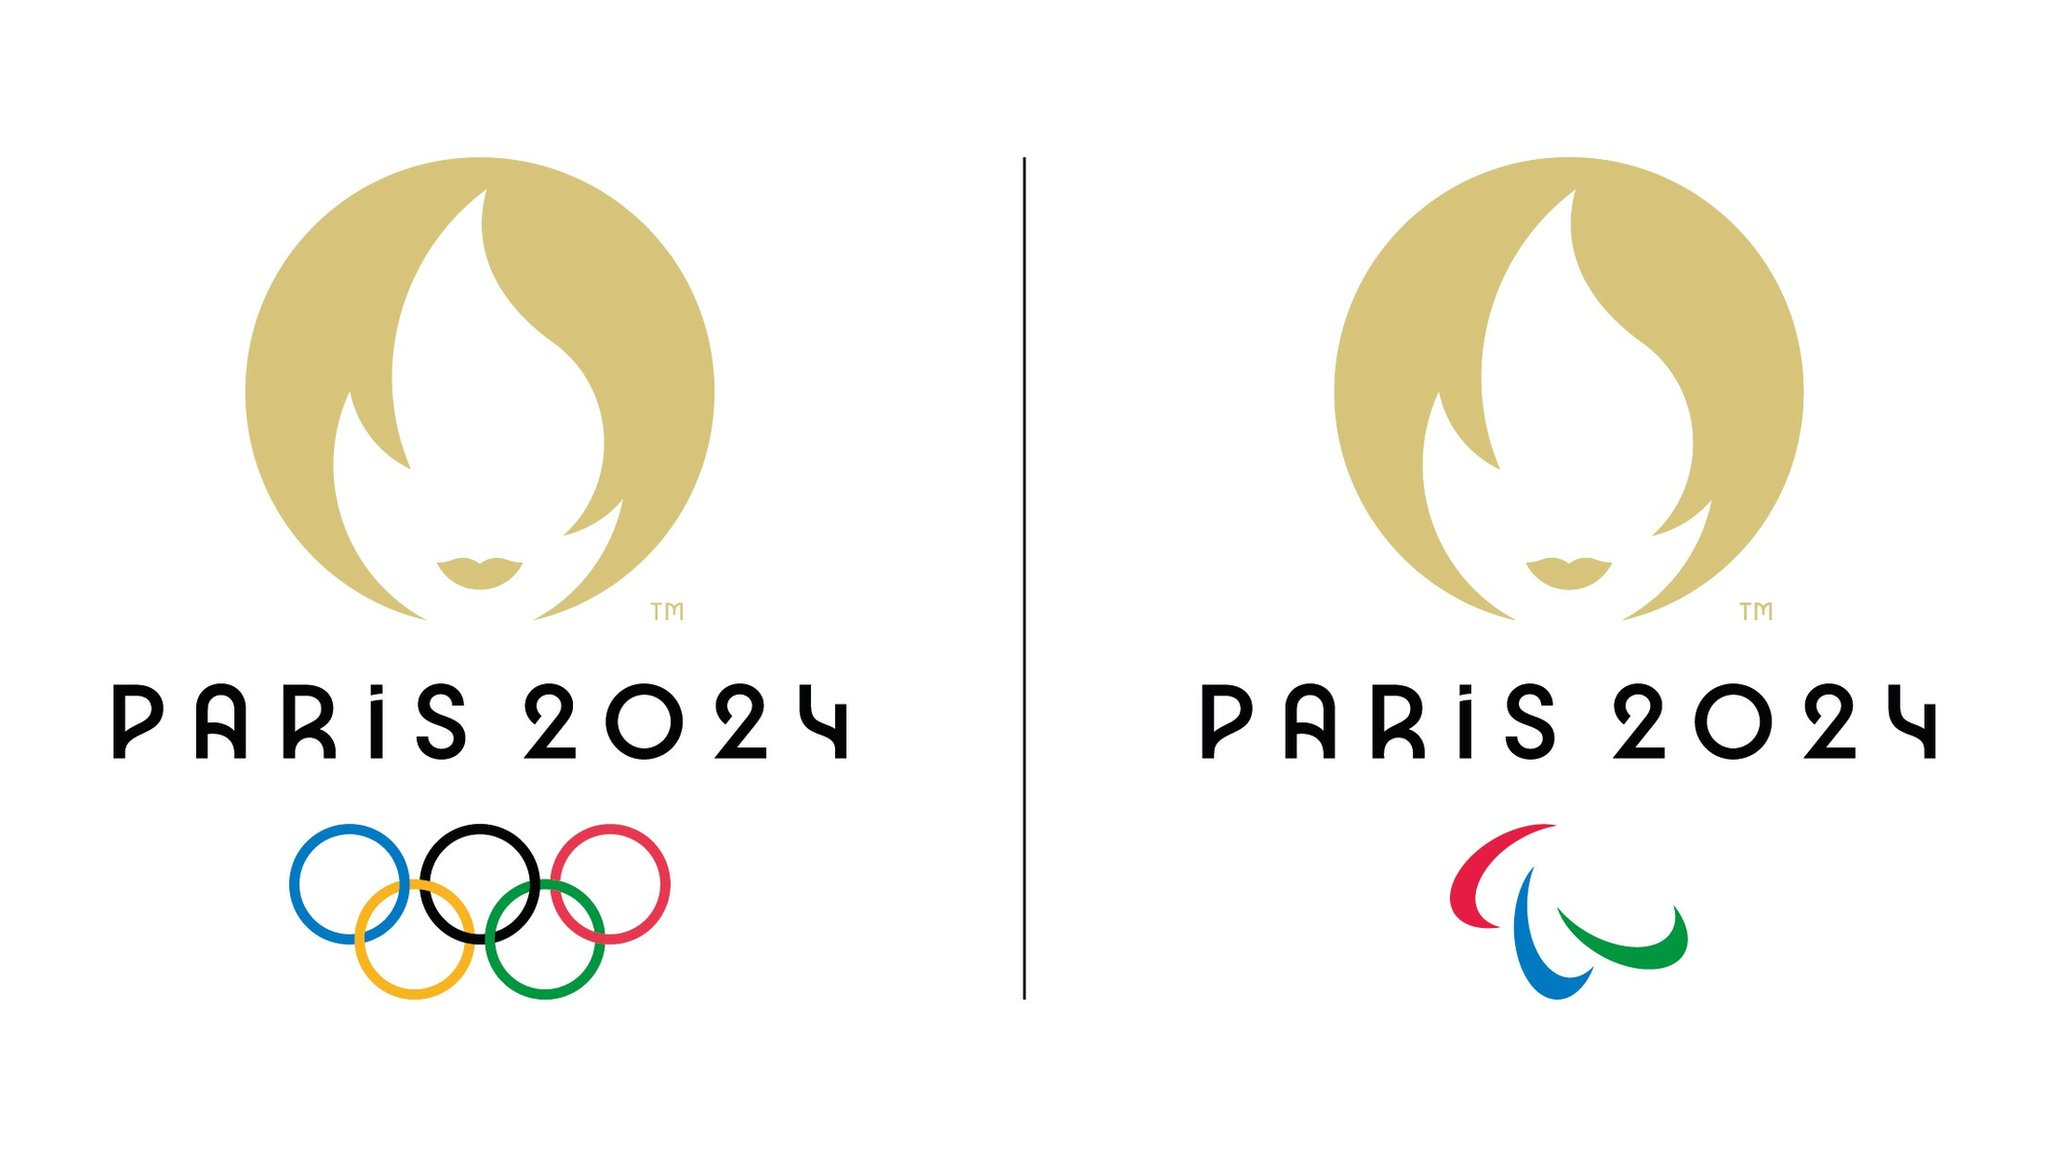 Olympic flame or dating ad Paris 20 logo divides opinion   BBC News